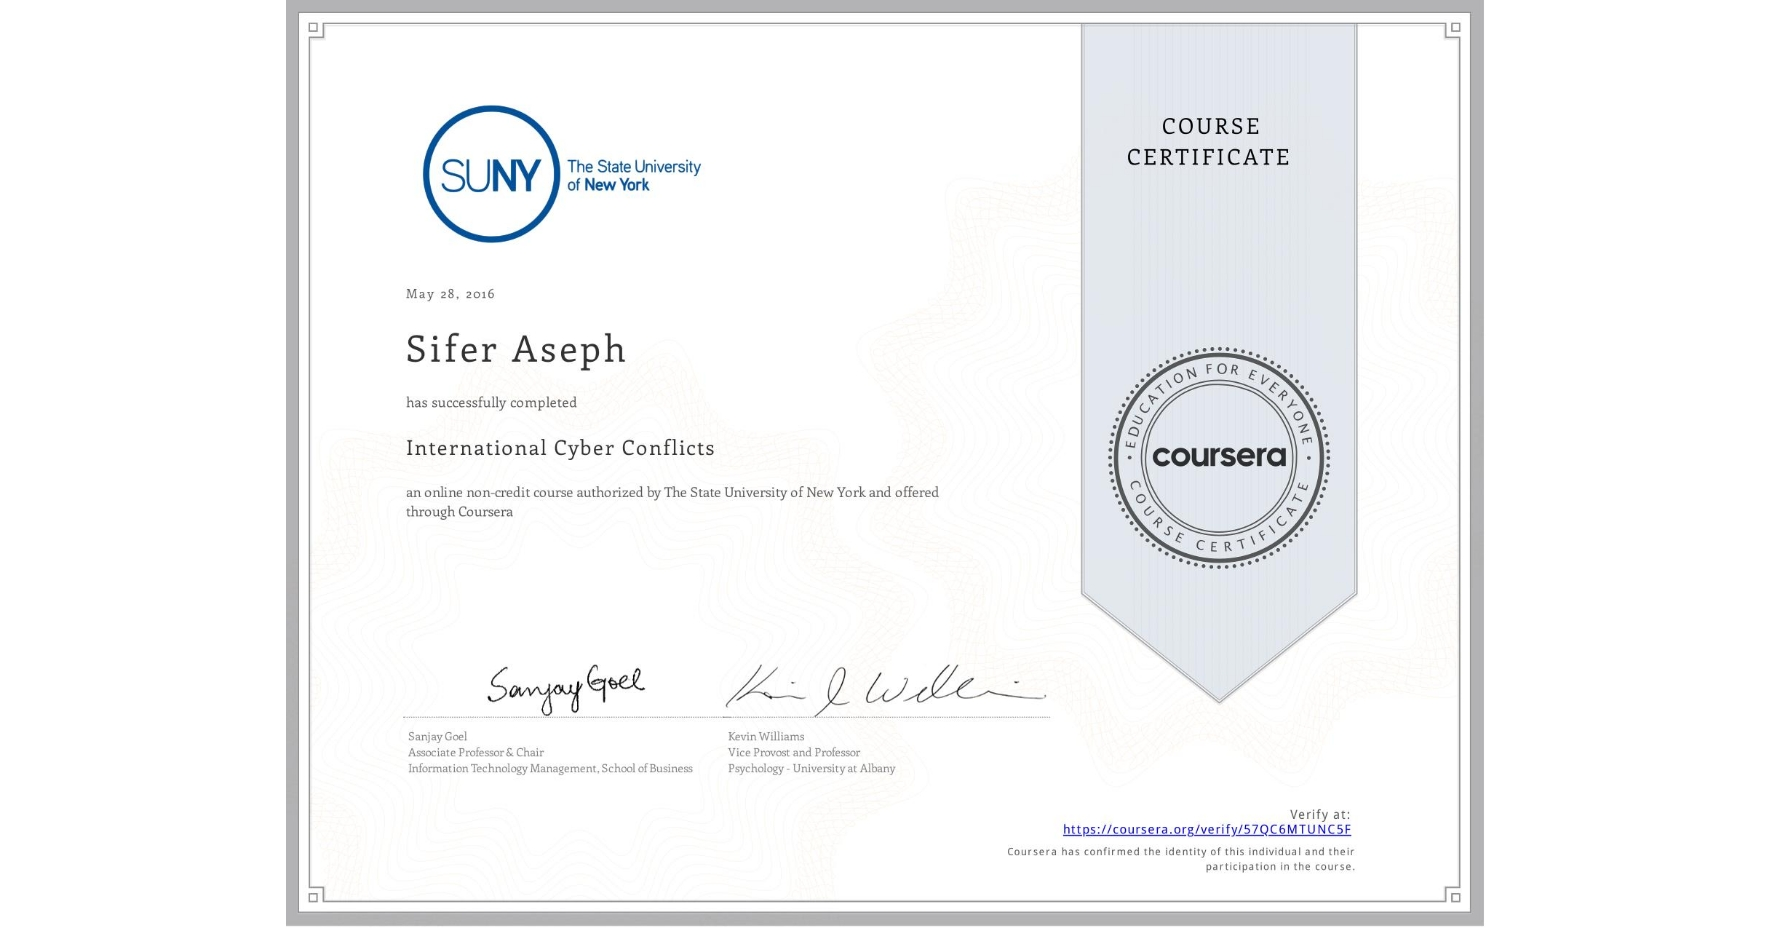 View certificate for Sifer Aseph, International Cyber Conflicts, an online non-credit course authorized by The State University of New York and offered through Coursera